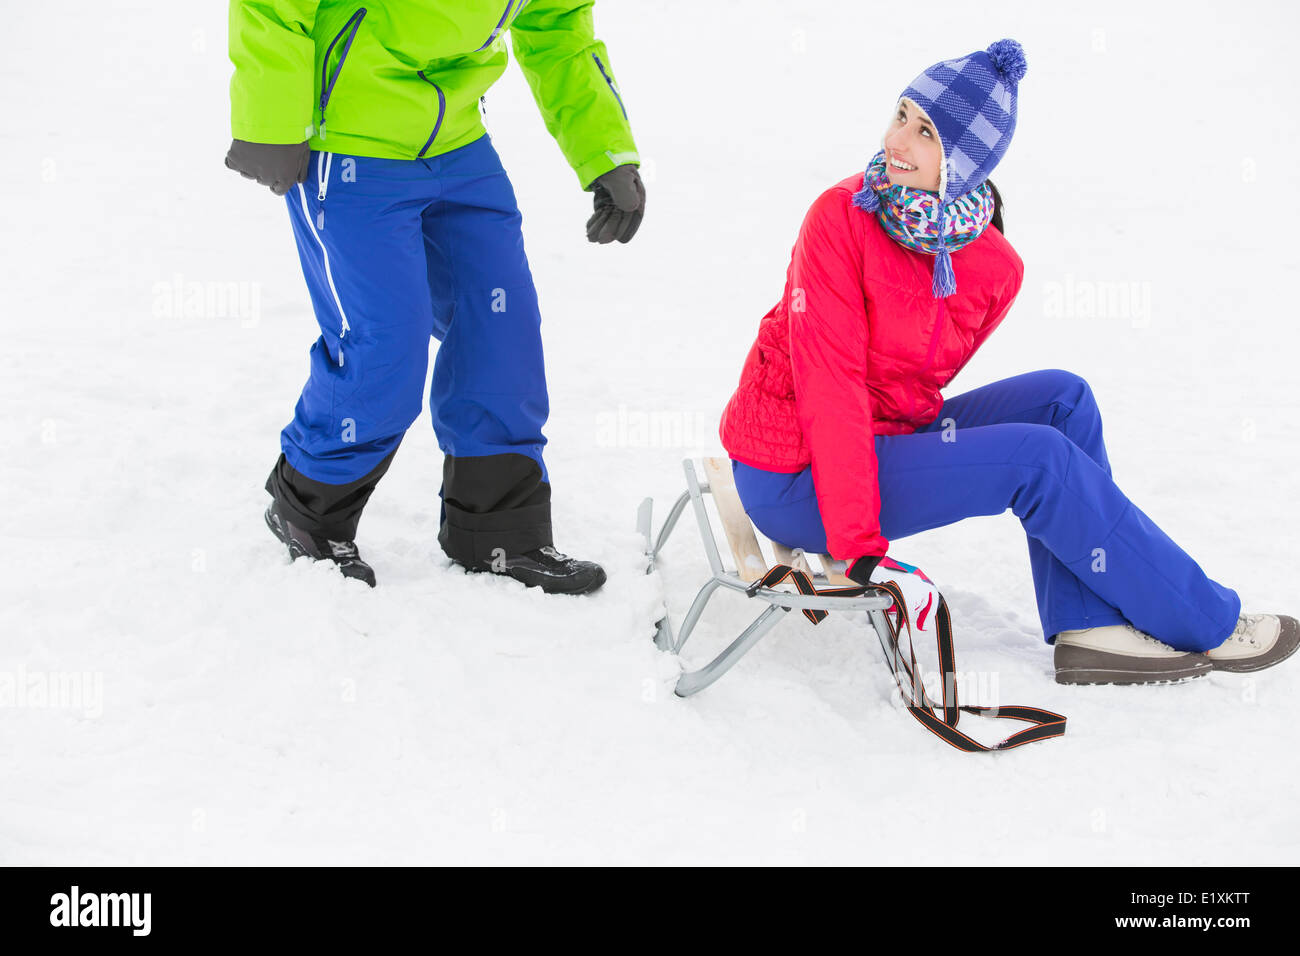 Happy young woman sitting on sled while looking at man in snow - Stock Image